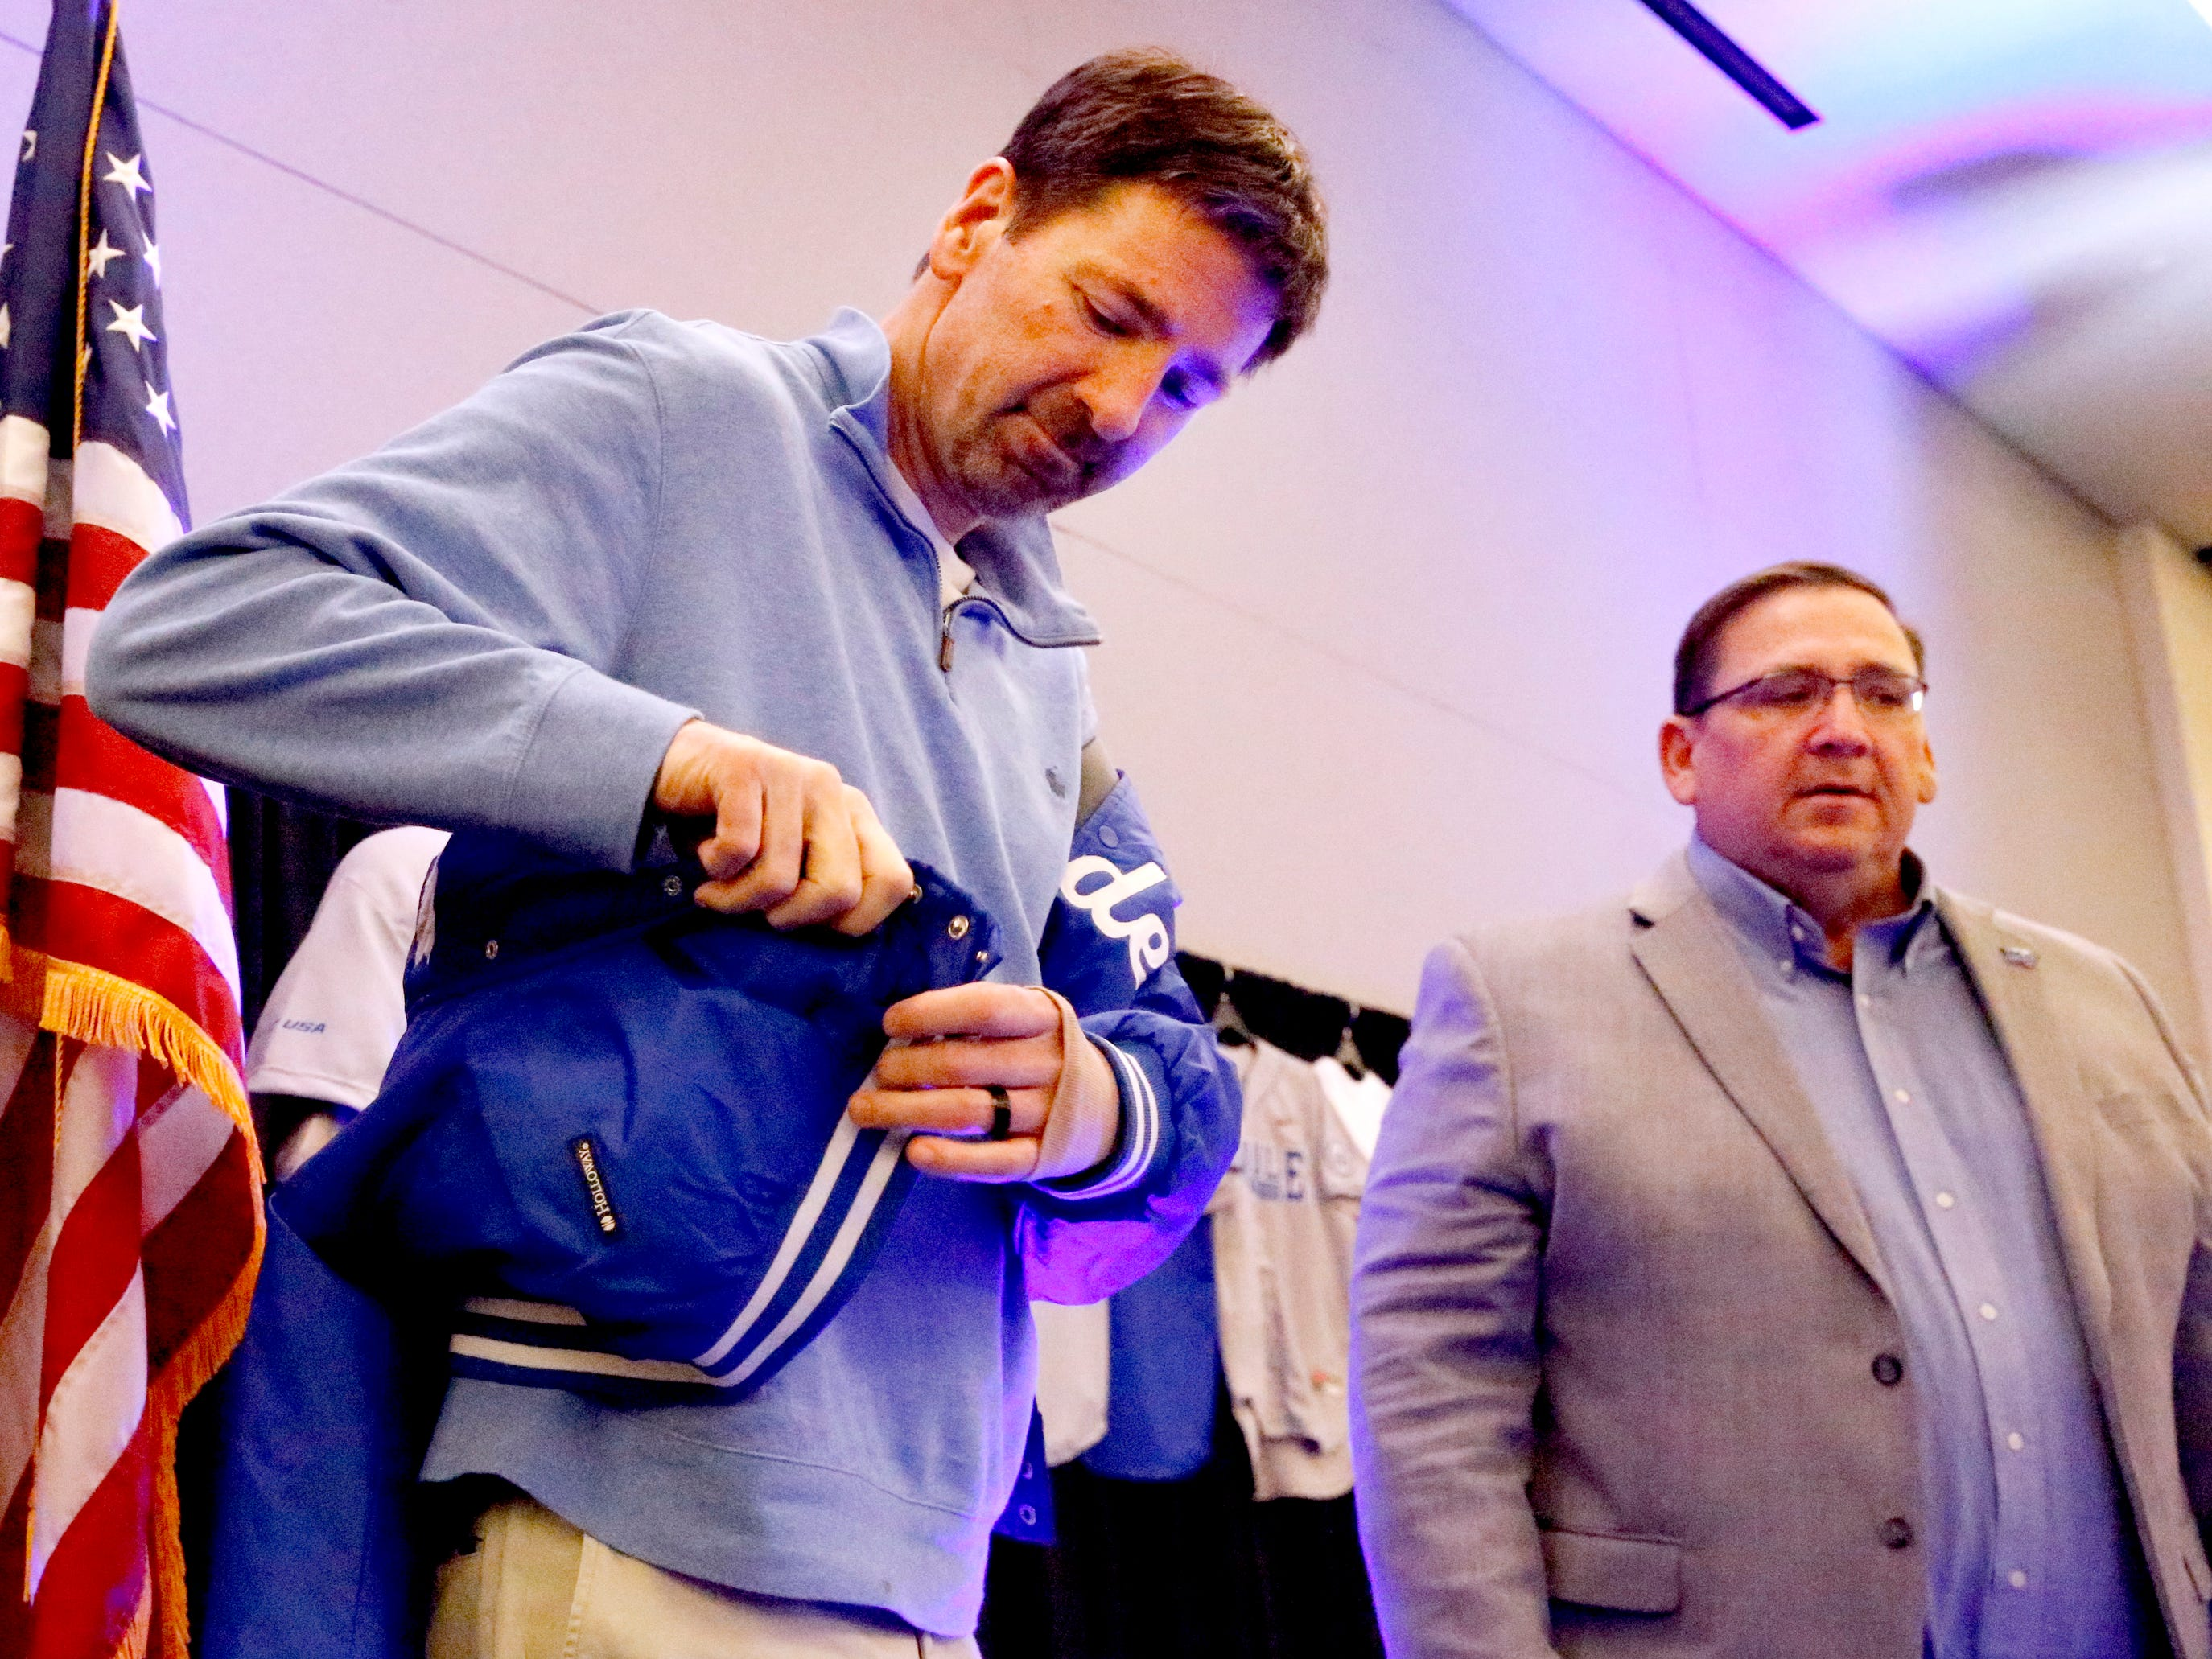 George Zimmerman puts on his Railbird coat after MTSU's new baseball coach Jim Toman, names Zimmerman as this year's Railbird on Friday, Feb. 1, 2019, during the annual Groundhog Day luncheon.